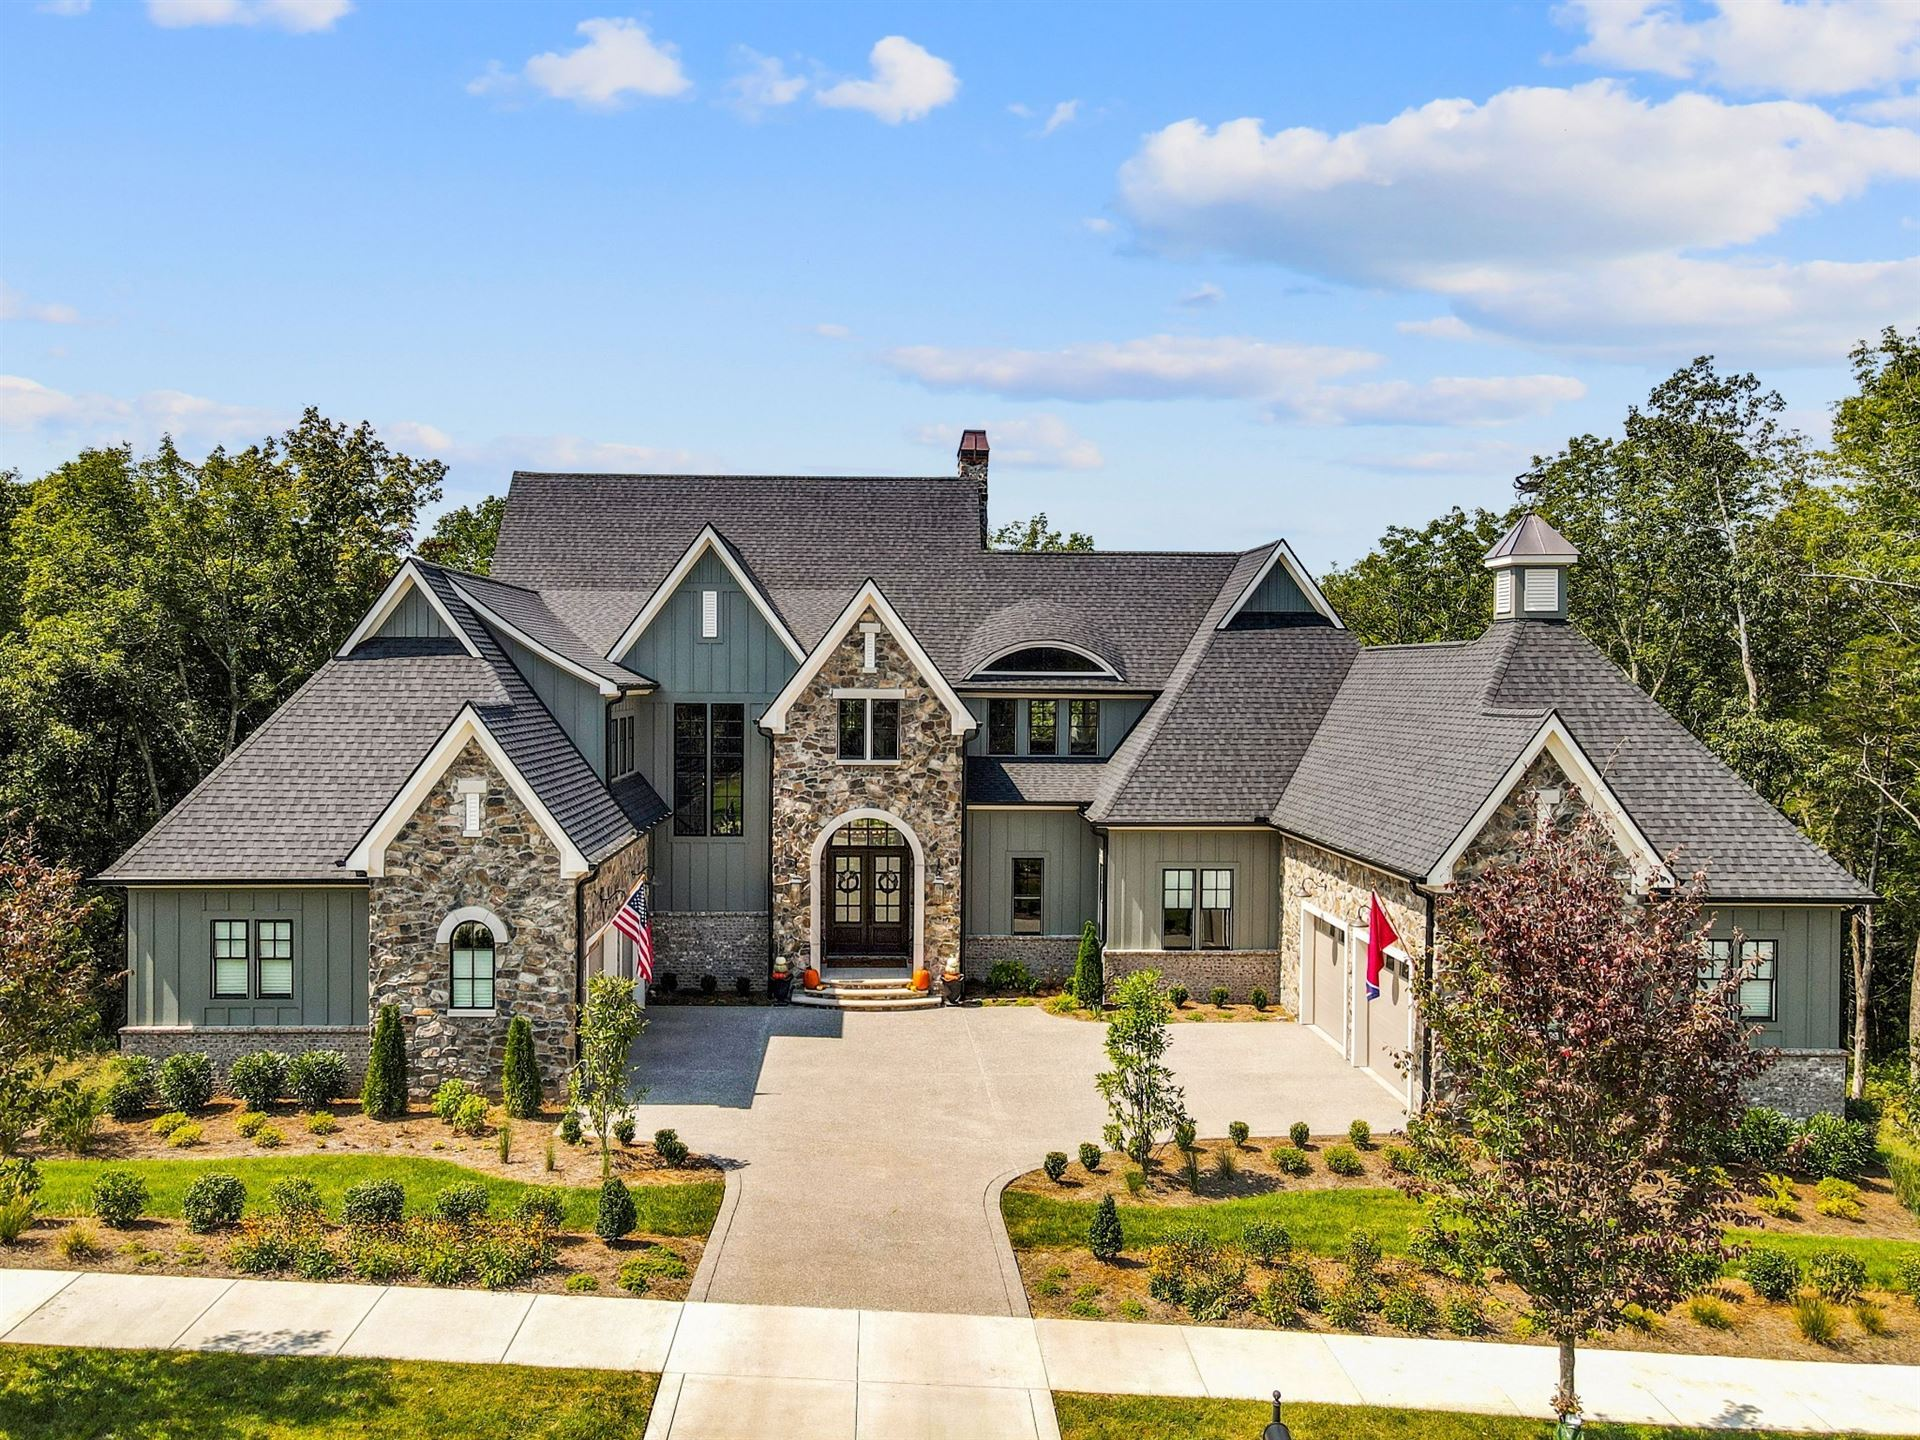 8119 Mountaintop Dr, College Grove, TN 37046 - MLS#: 2234690